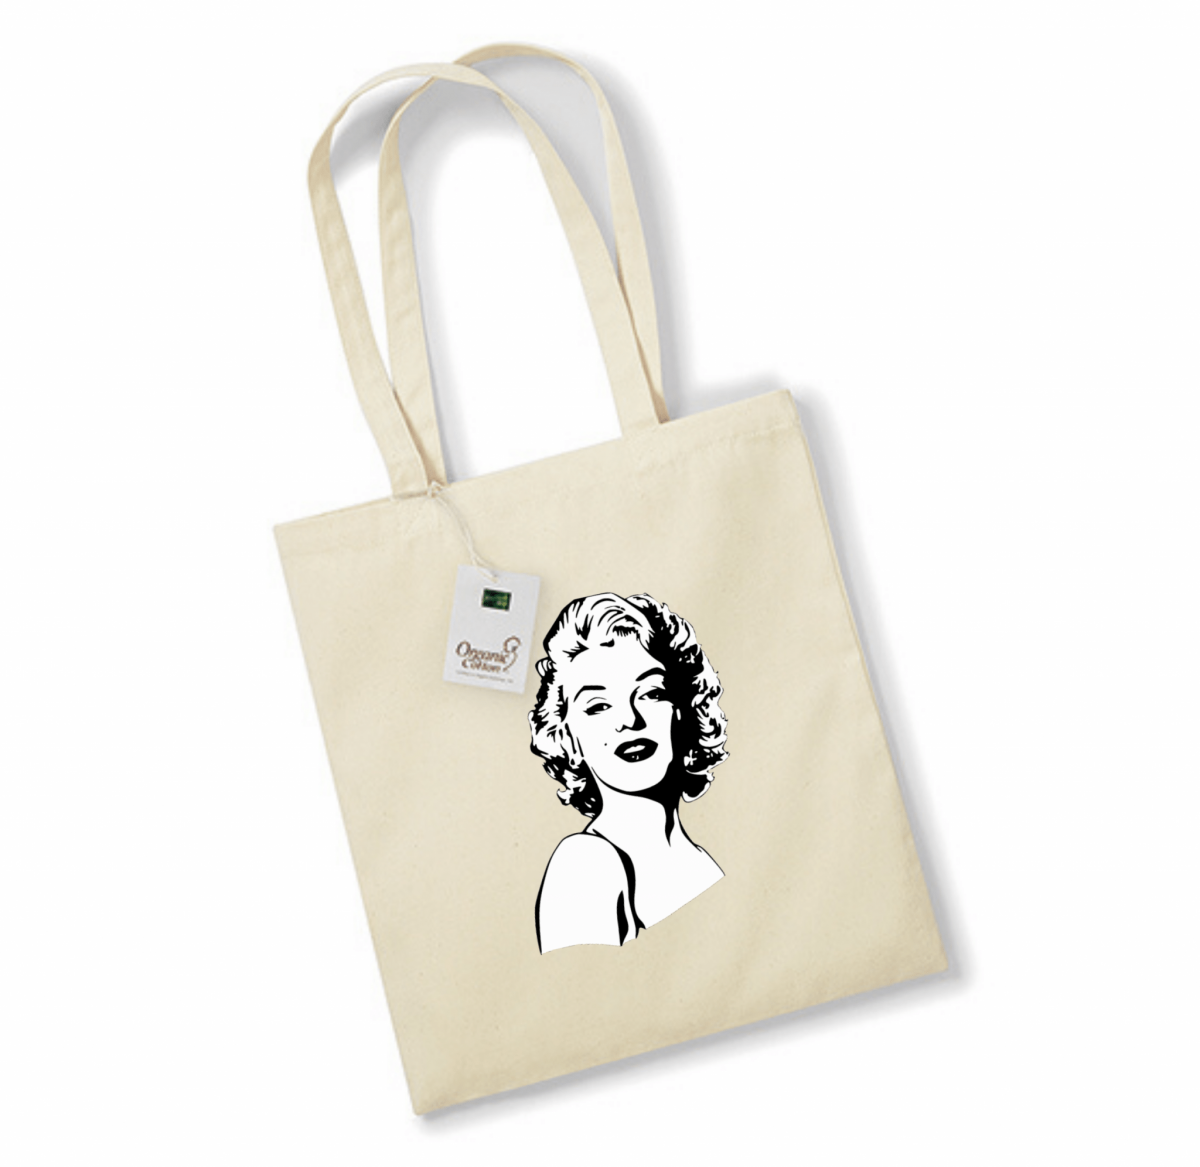 Sac de courses - Portrait de Marilyn Monroe